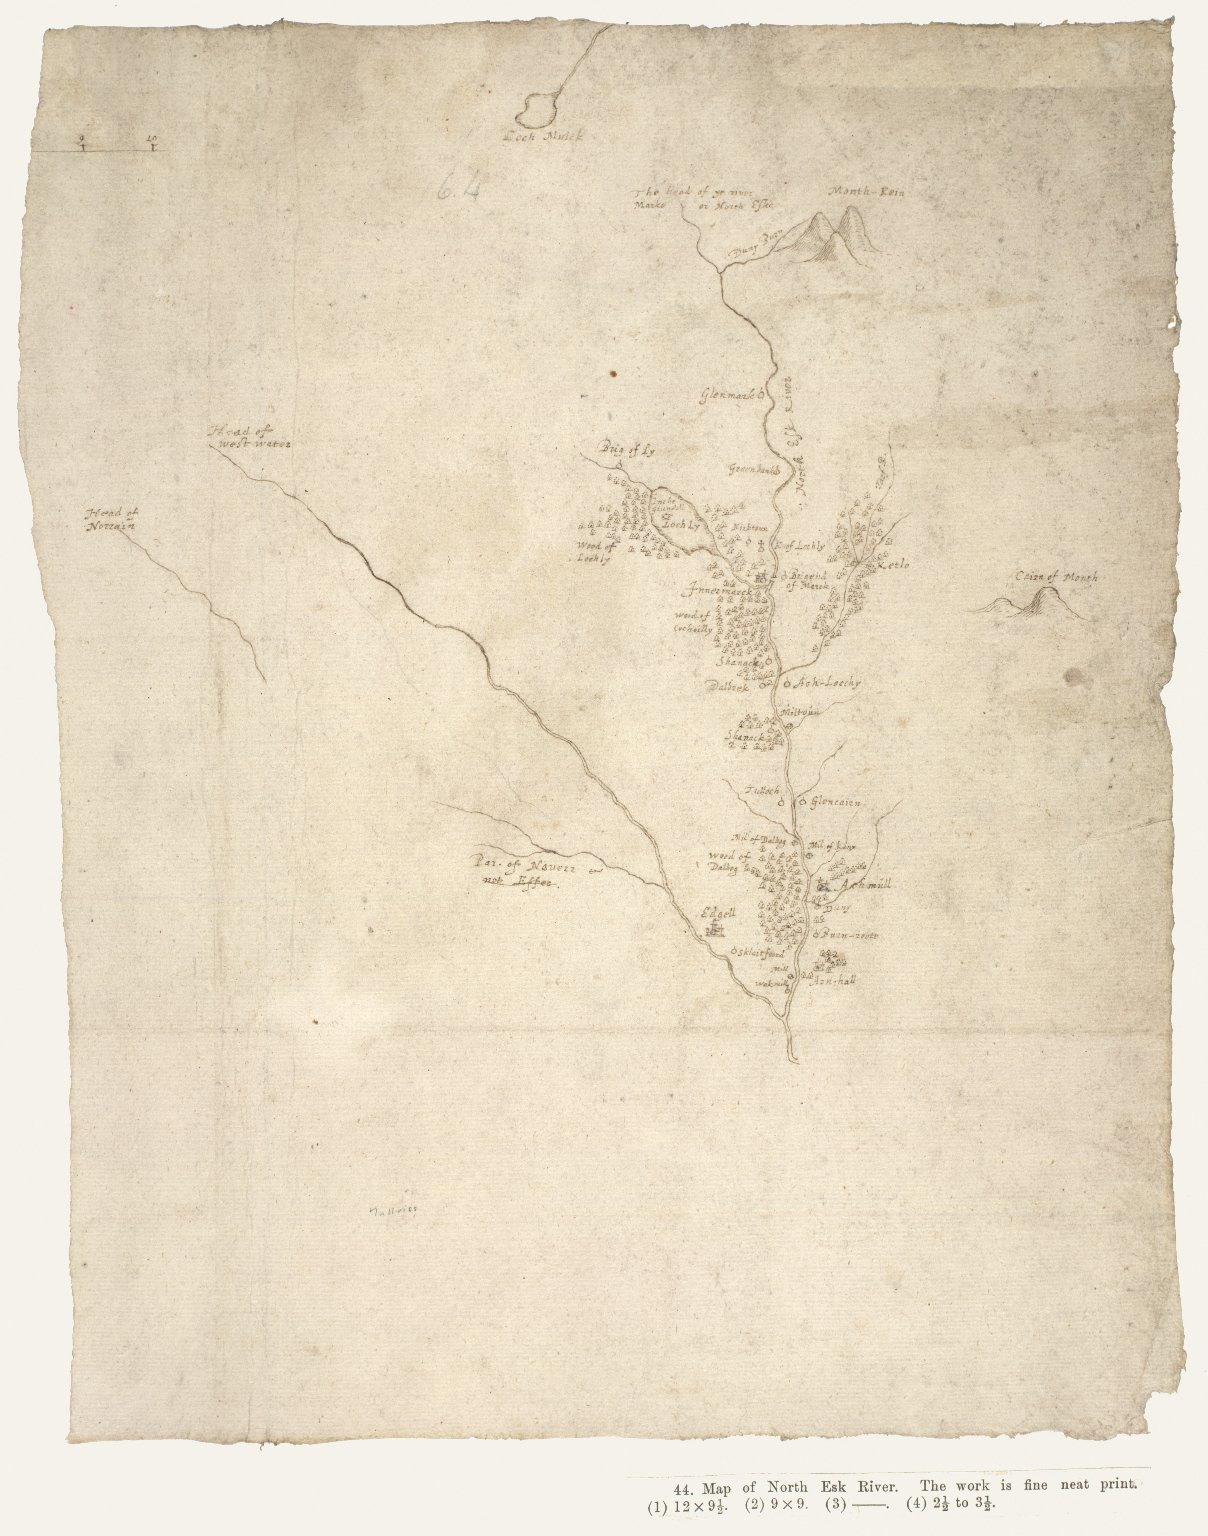 [Map of North Esk River] [1 of 1]